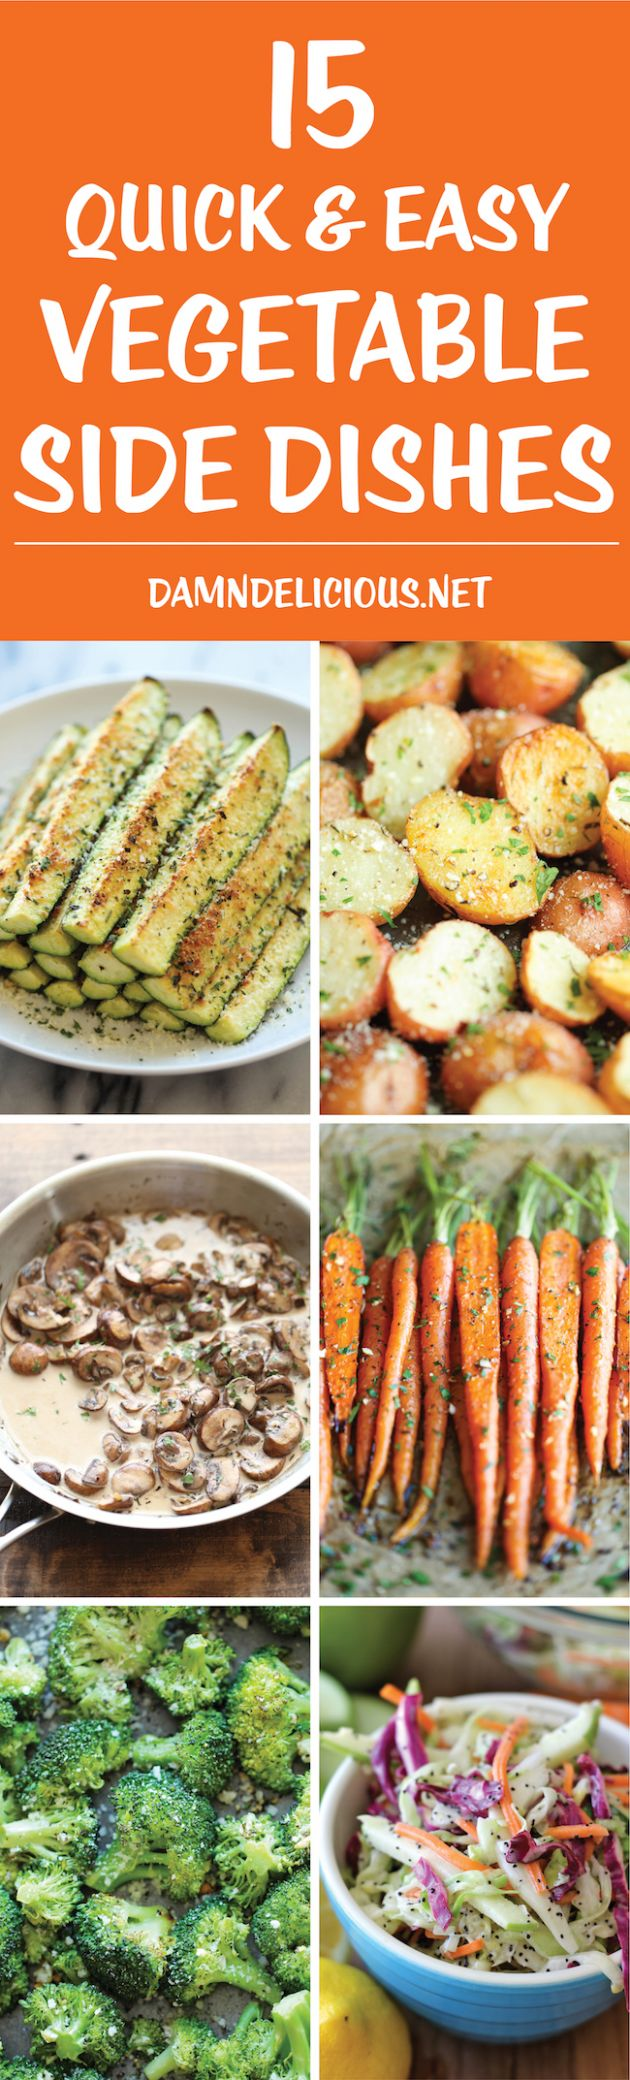 8 Quick and Easy Vegetable Side Dishes - Damn Delicious - Vegetable Recipes Yummy